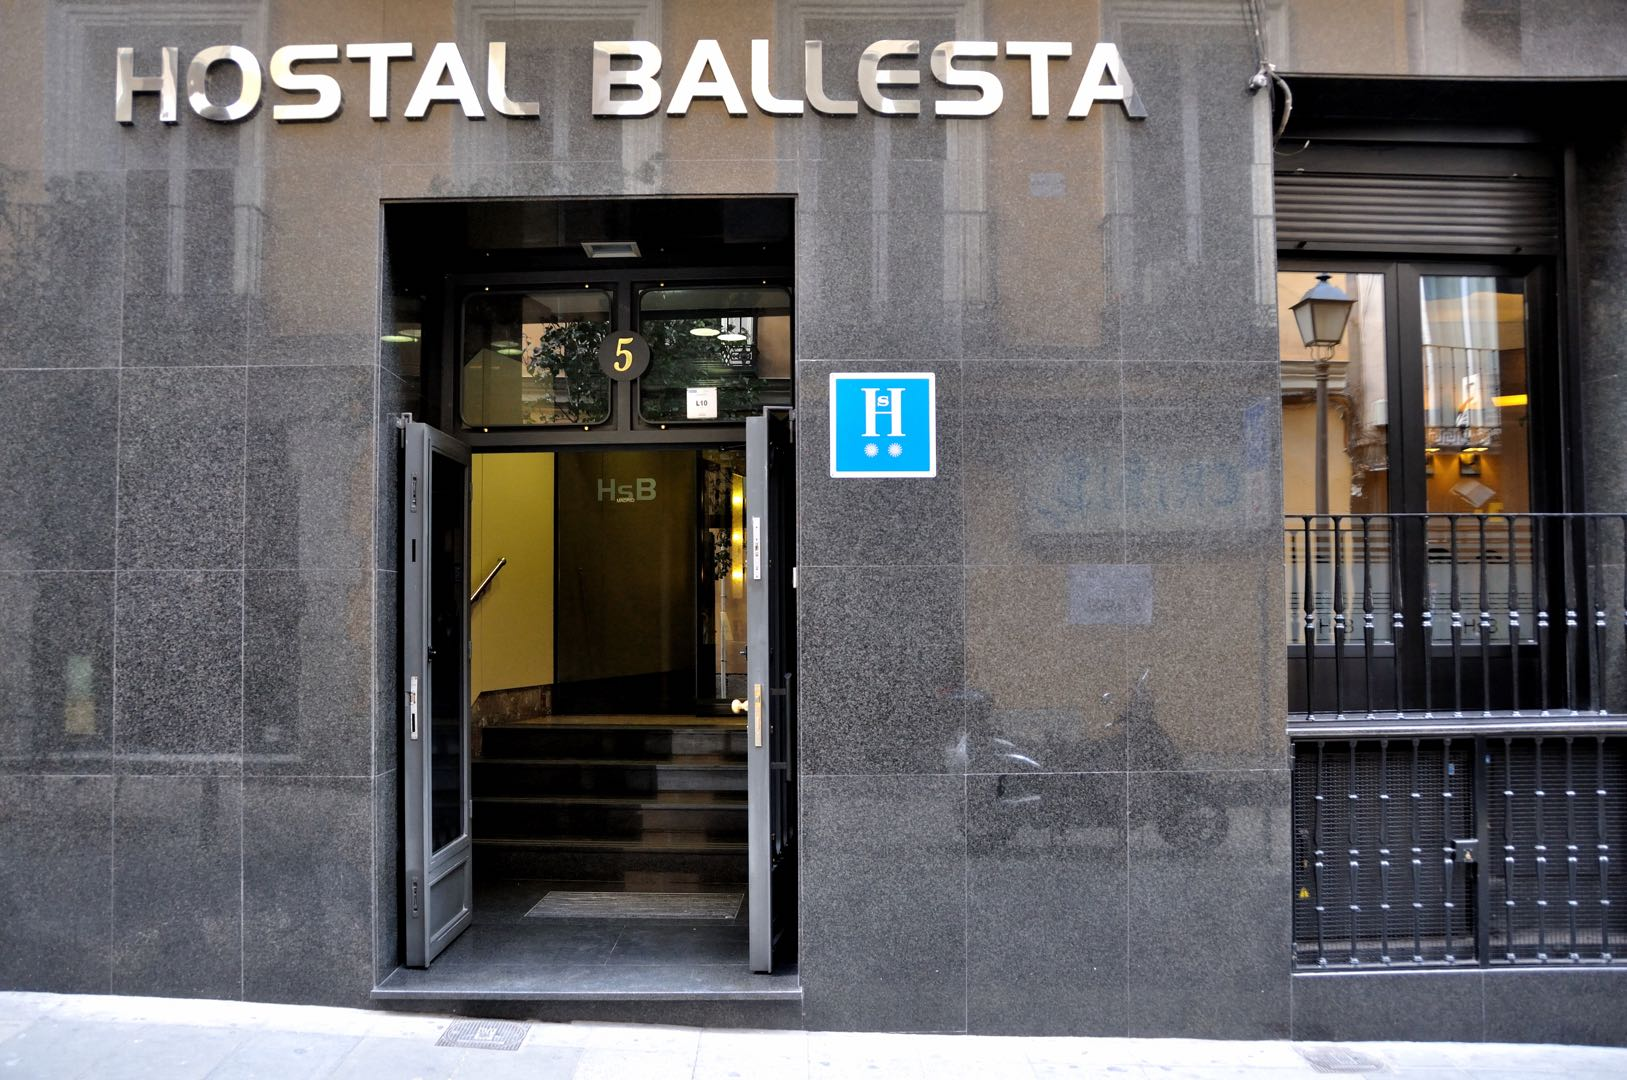 Hostal Ballesta - Madrid